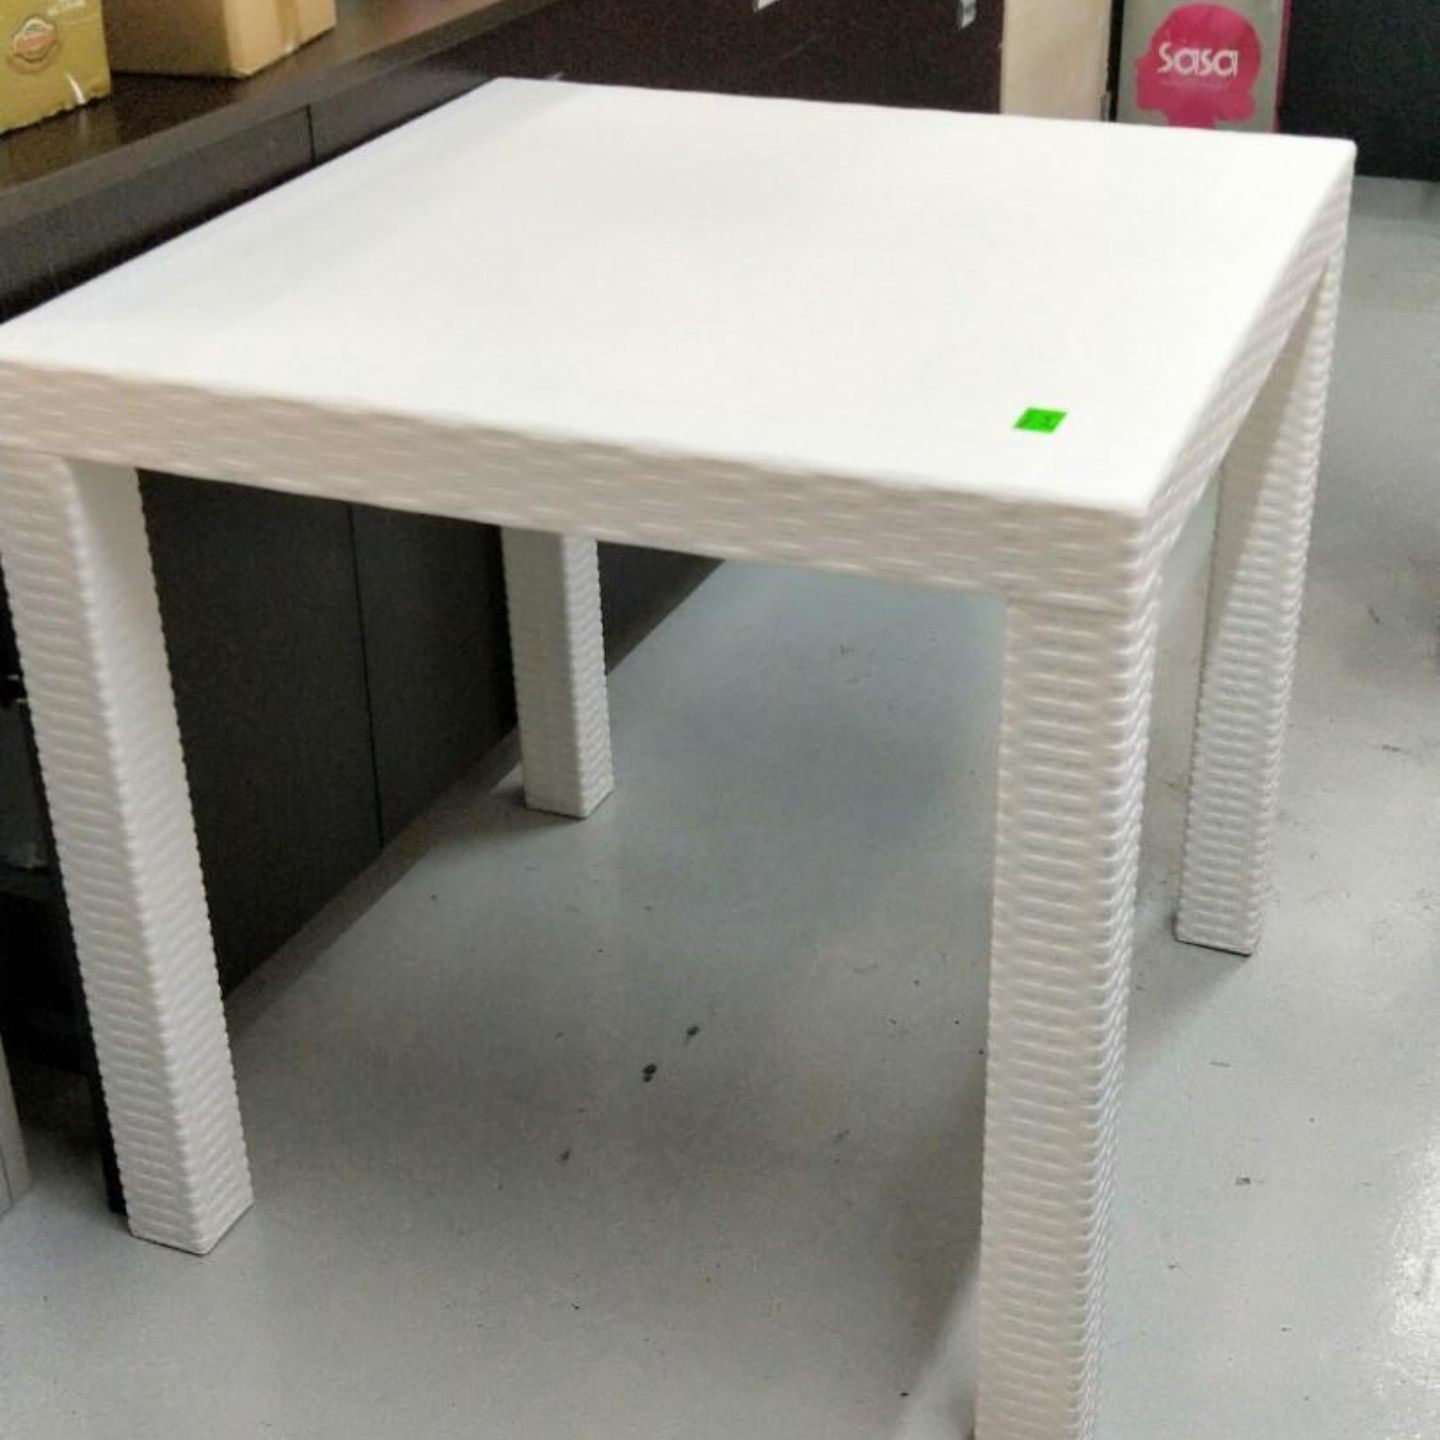 LORRAINE REG Outdoor Dining Table WHITE